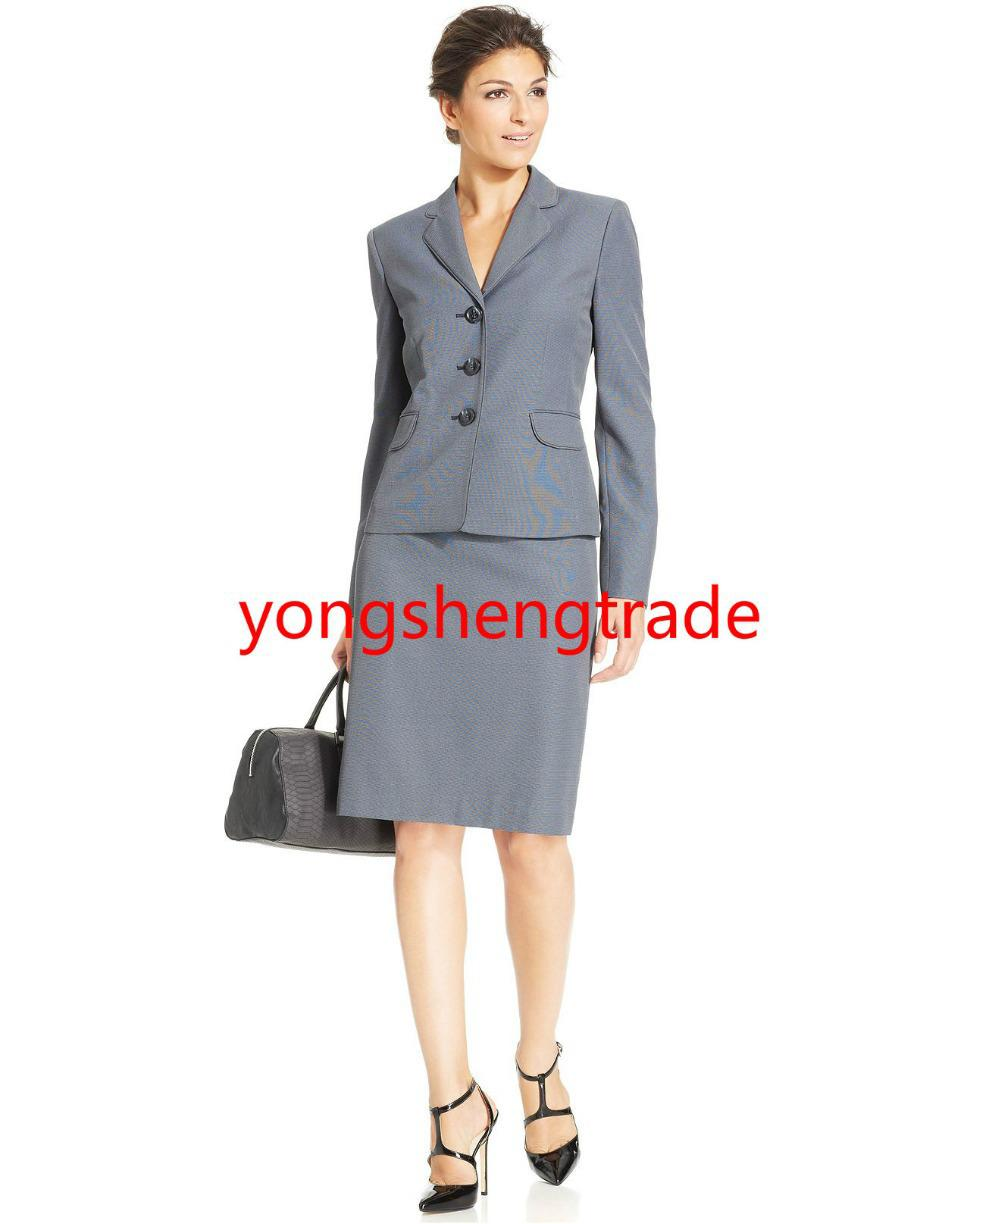 Women's Suits: Business Suits, Skirt Suits, and Pants Suits For all of your dressy and professional needs, look no further than Belk's selection of women's business suits, including skirt suits, pants suits .